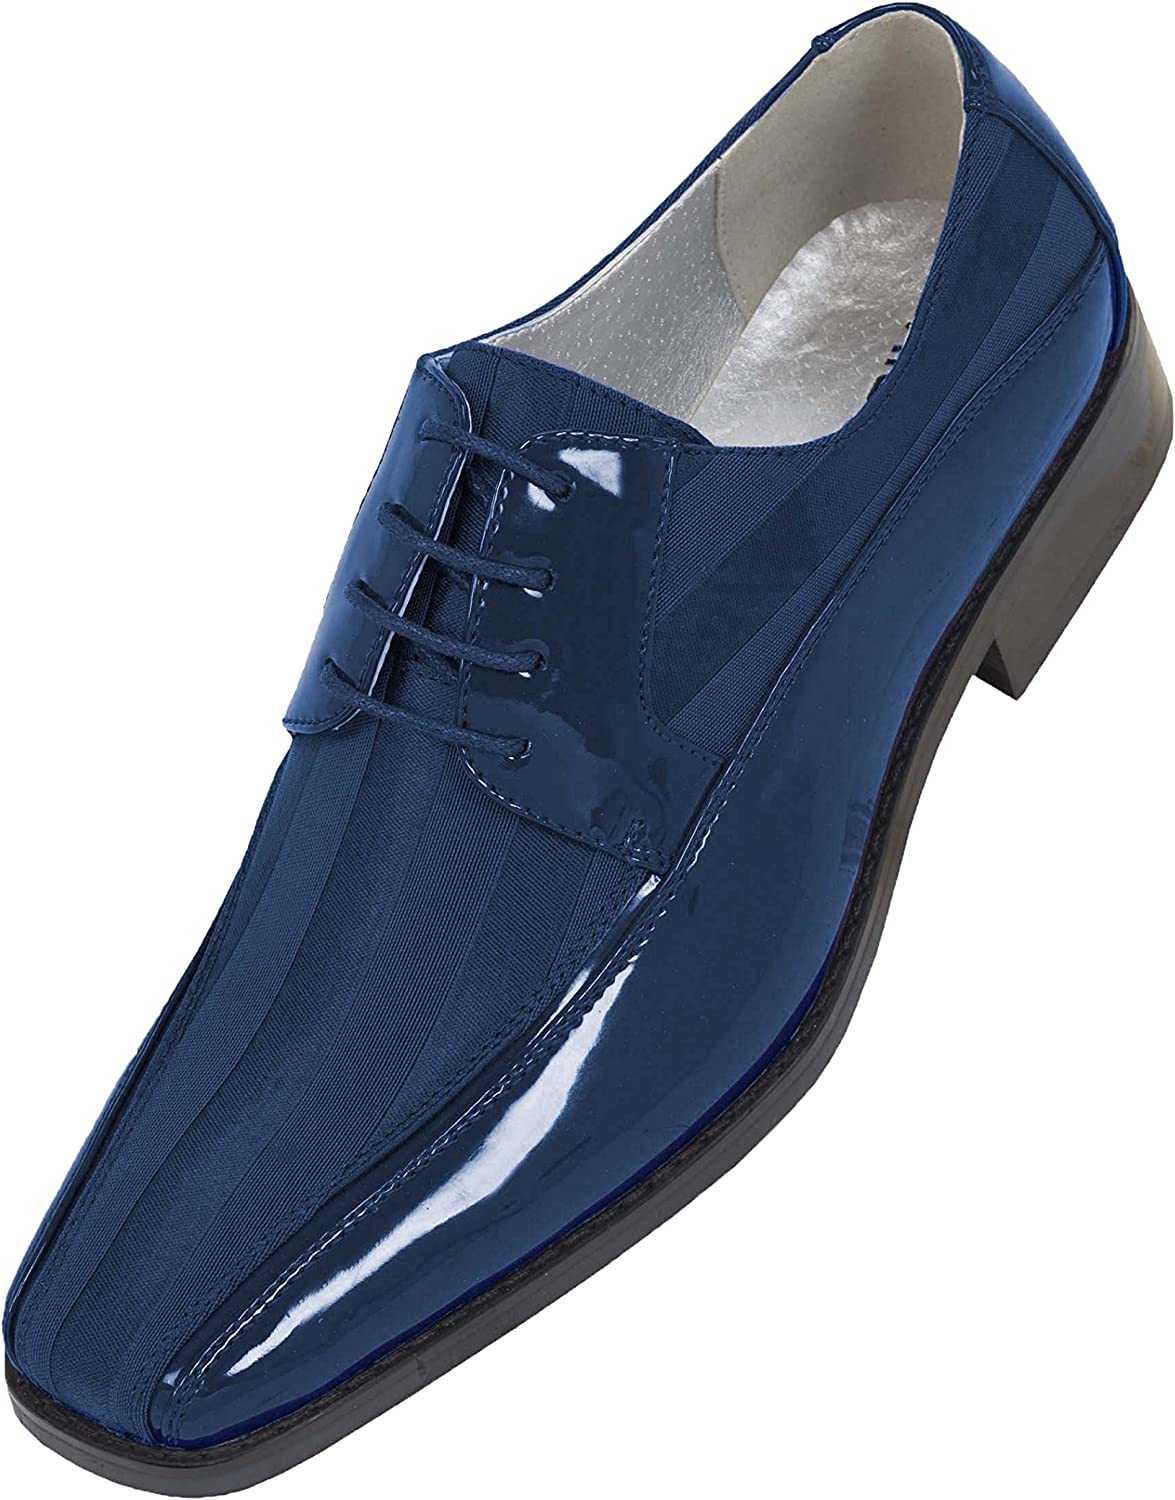 Viotti 179 - excellence Mens Shoes Dre Oxford Men Casual for latest